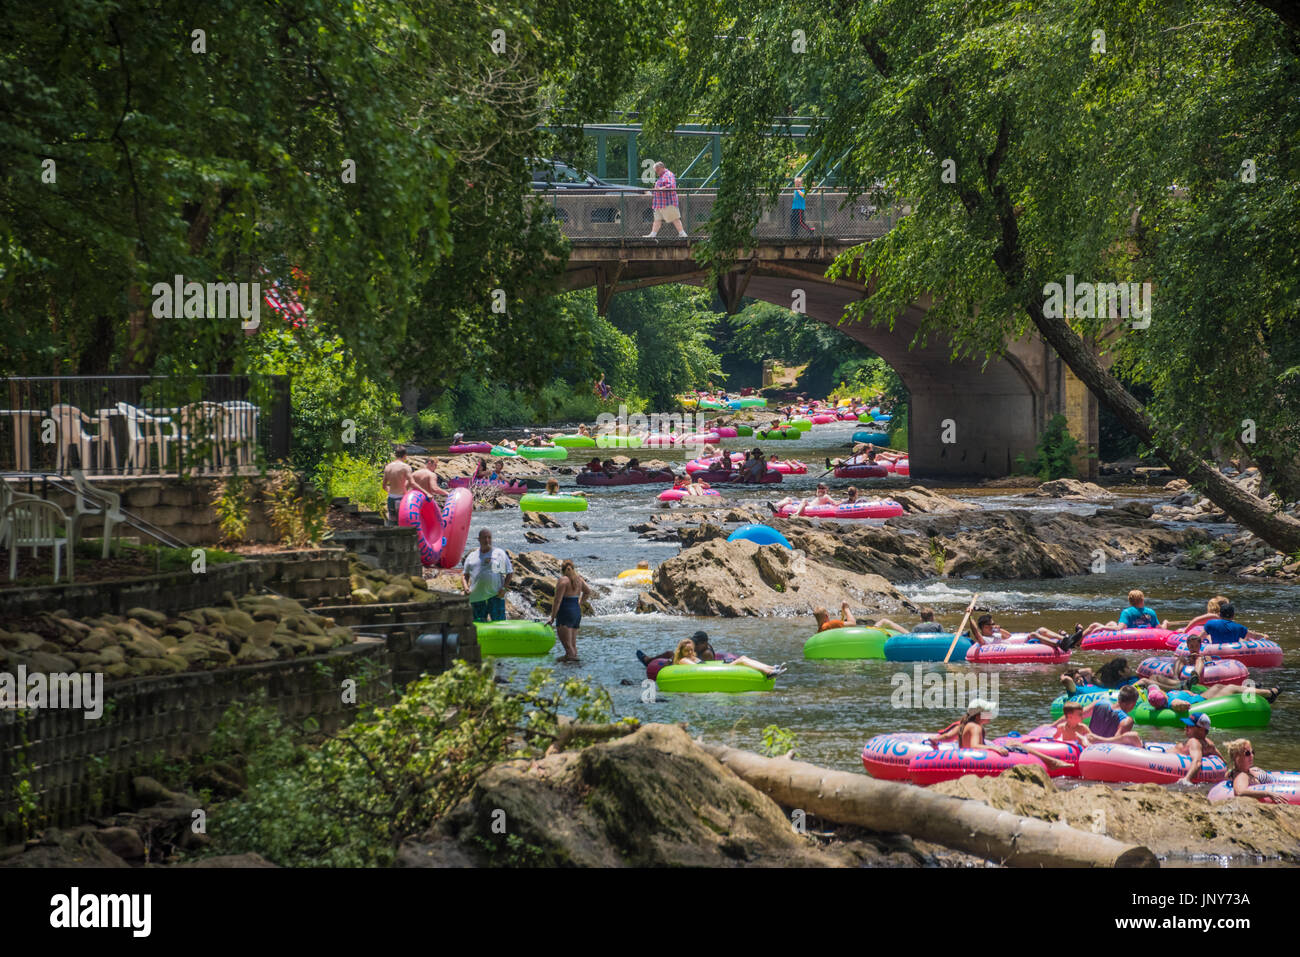 Families and friends tubing through downtown Helen, Georgia on the Chattahoochee River in the Blue Ridge Mountains. - Stock Image